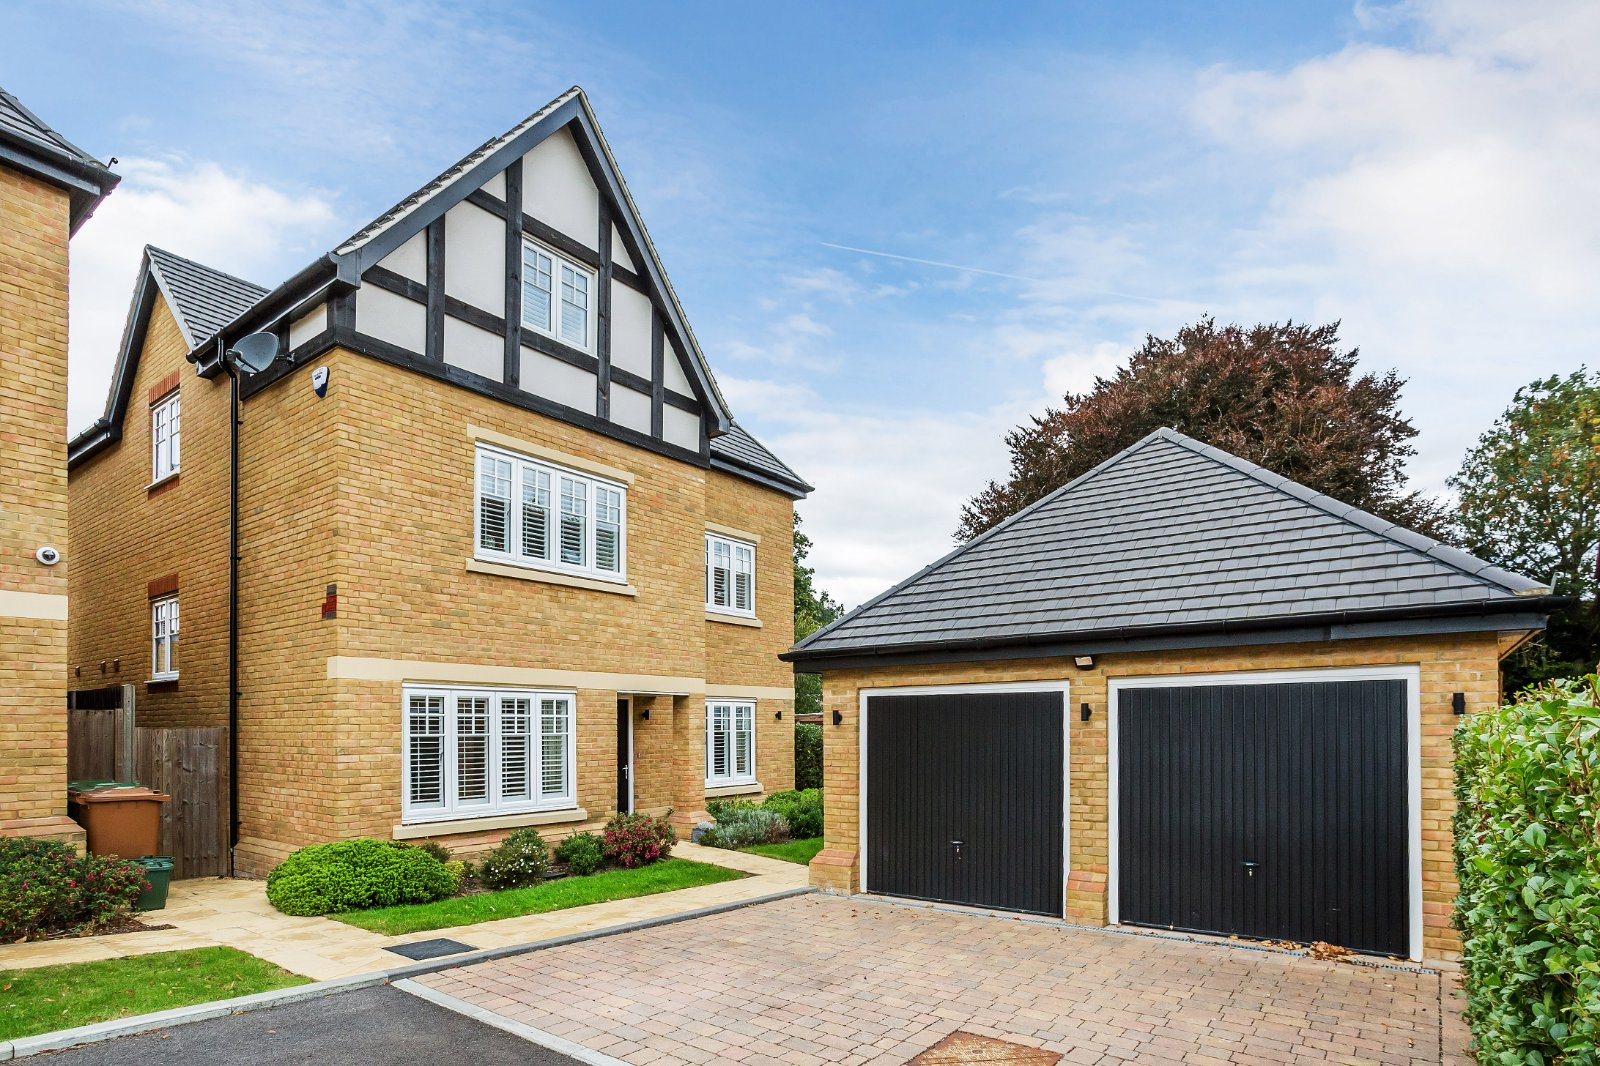 luxury specification new build family home in London Surrey area